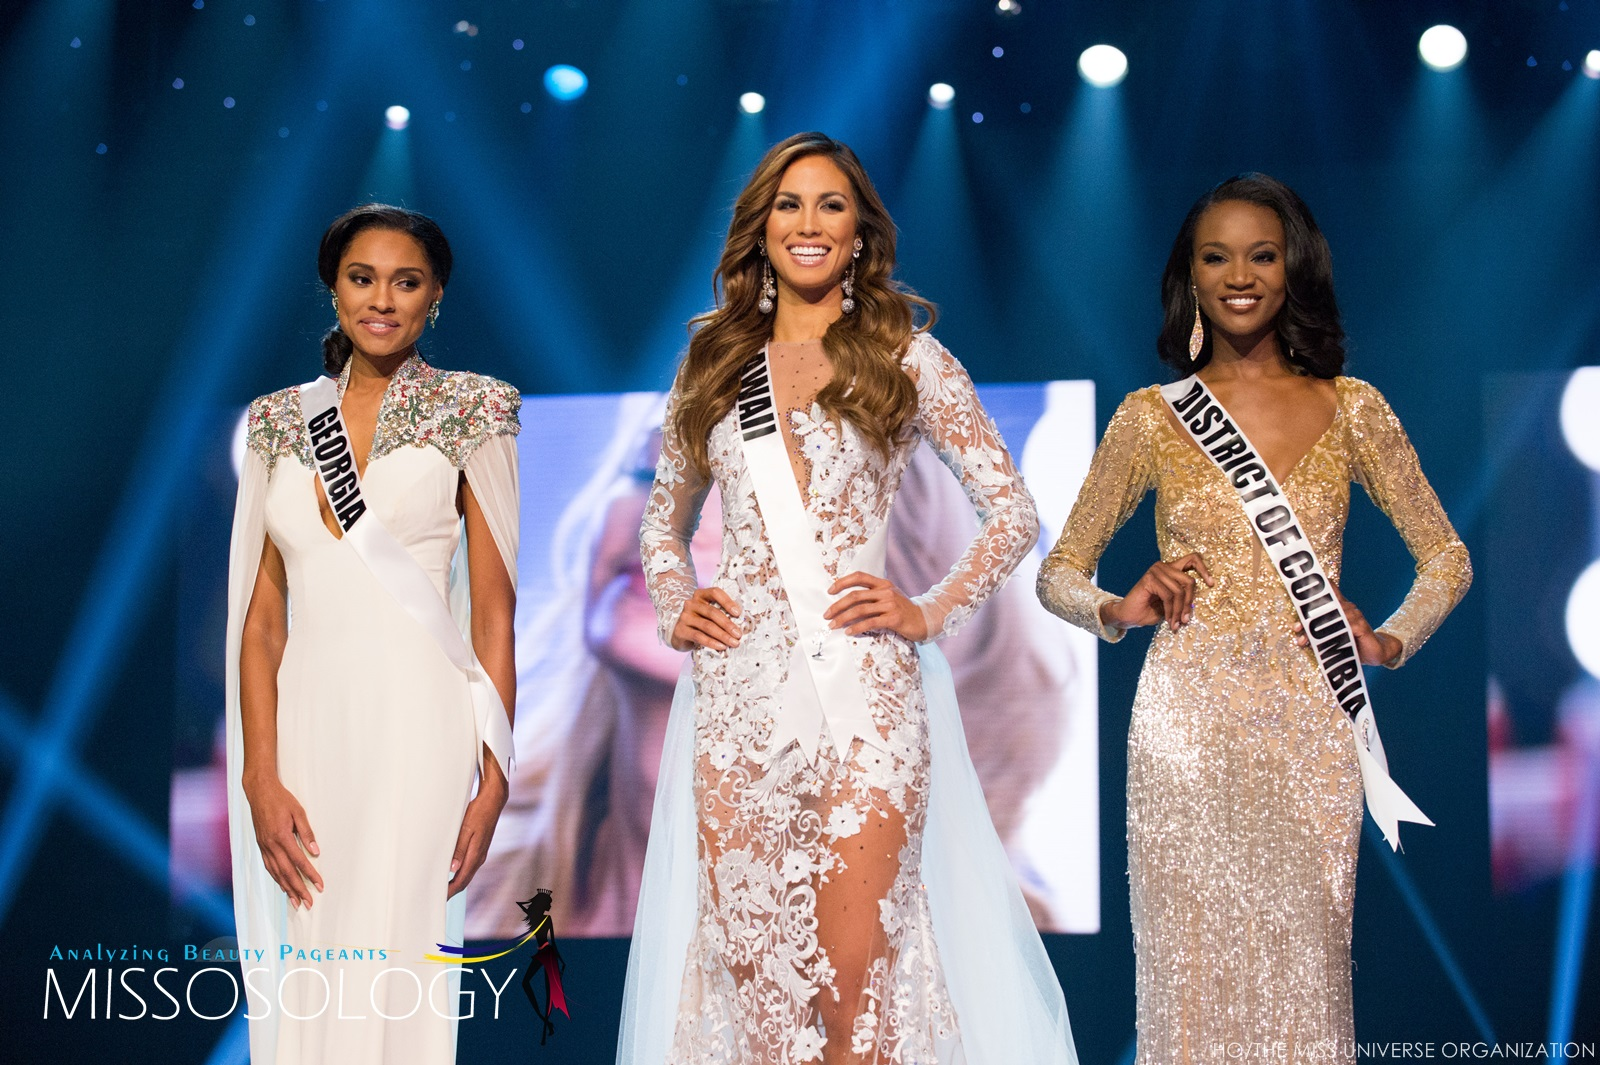 Emanii Davis, Miss Georgia USA 2016; Chelsea Hardin, Miss Hawaii USA 2016; and Deshauna Barber, Miss District Of Columbia USA 2016,  are announced as the top 3 finalists during the 2016 MISS USA® Competition airing live from the T-Mobile Arena in Las Vegas on FOX Sunday, June 5th. HO/The Miss Universe Organization